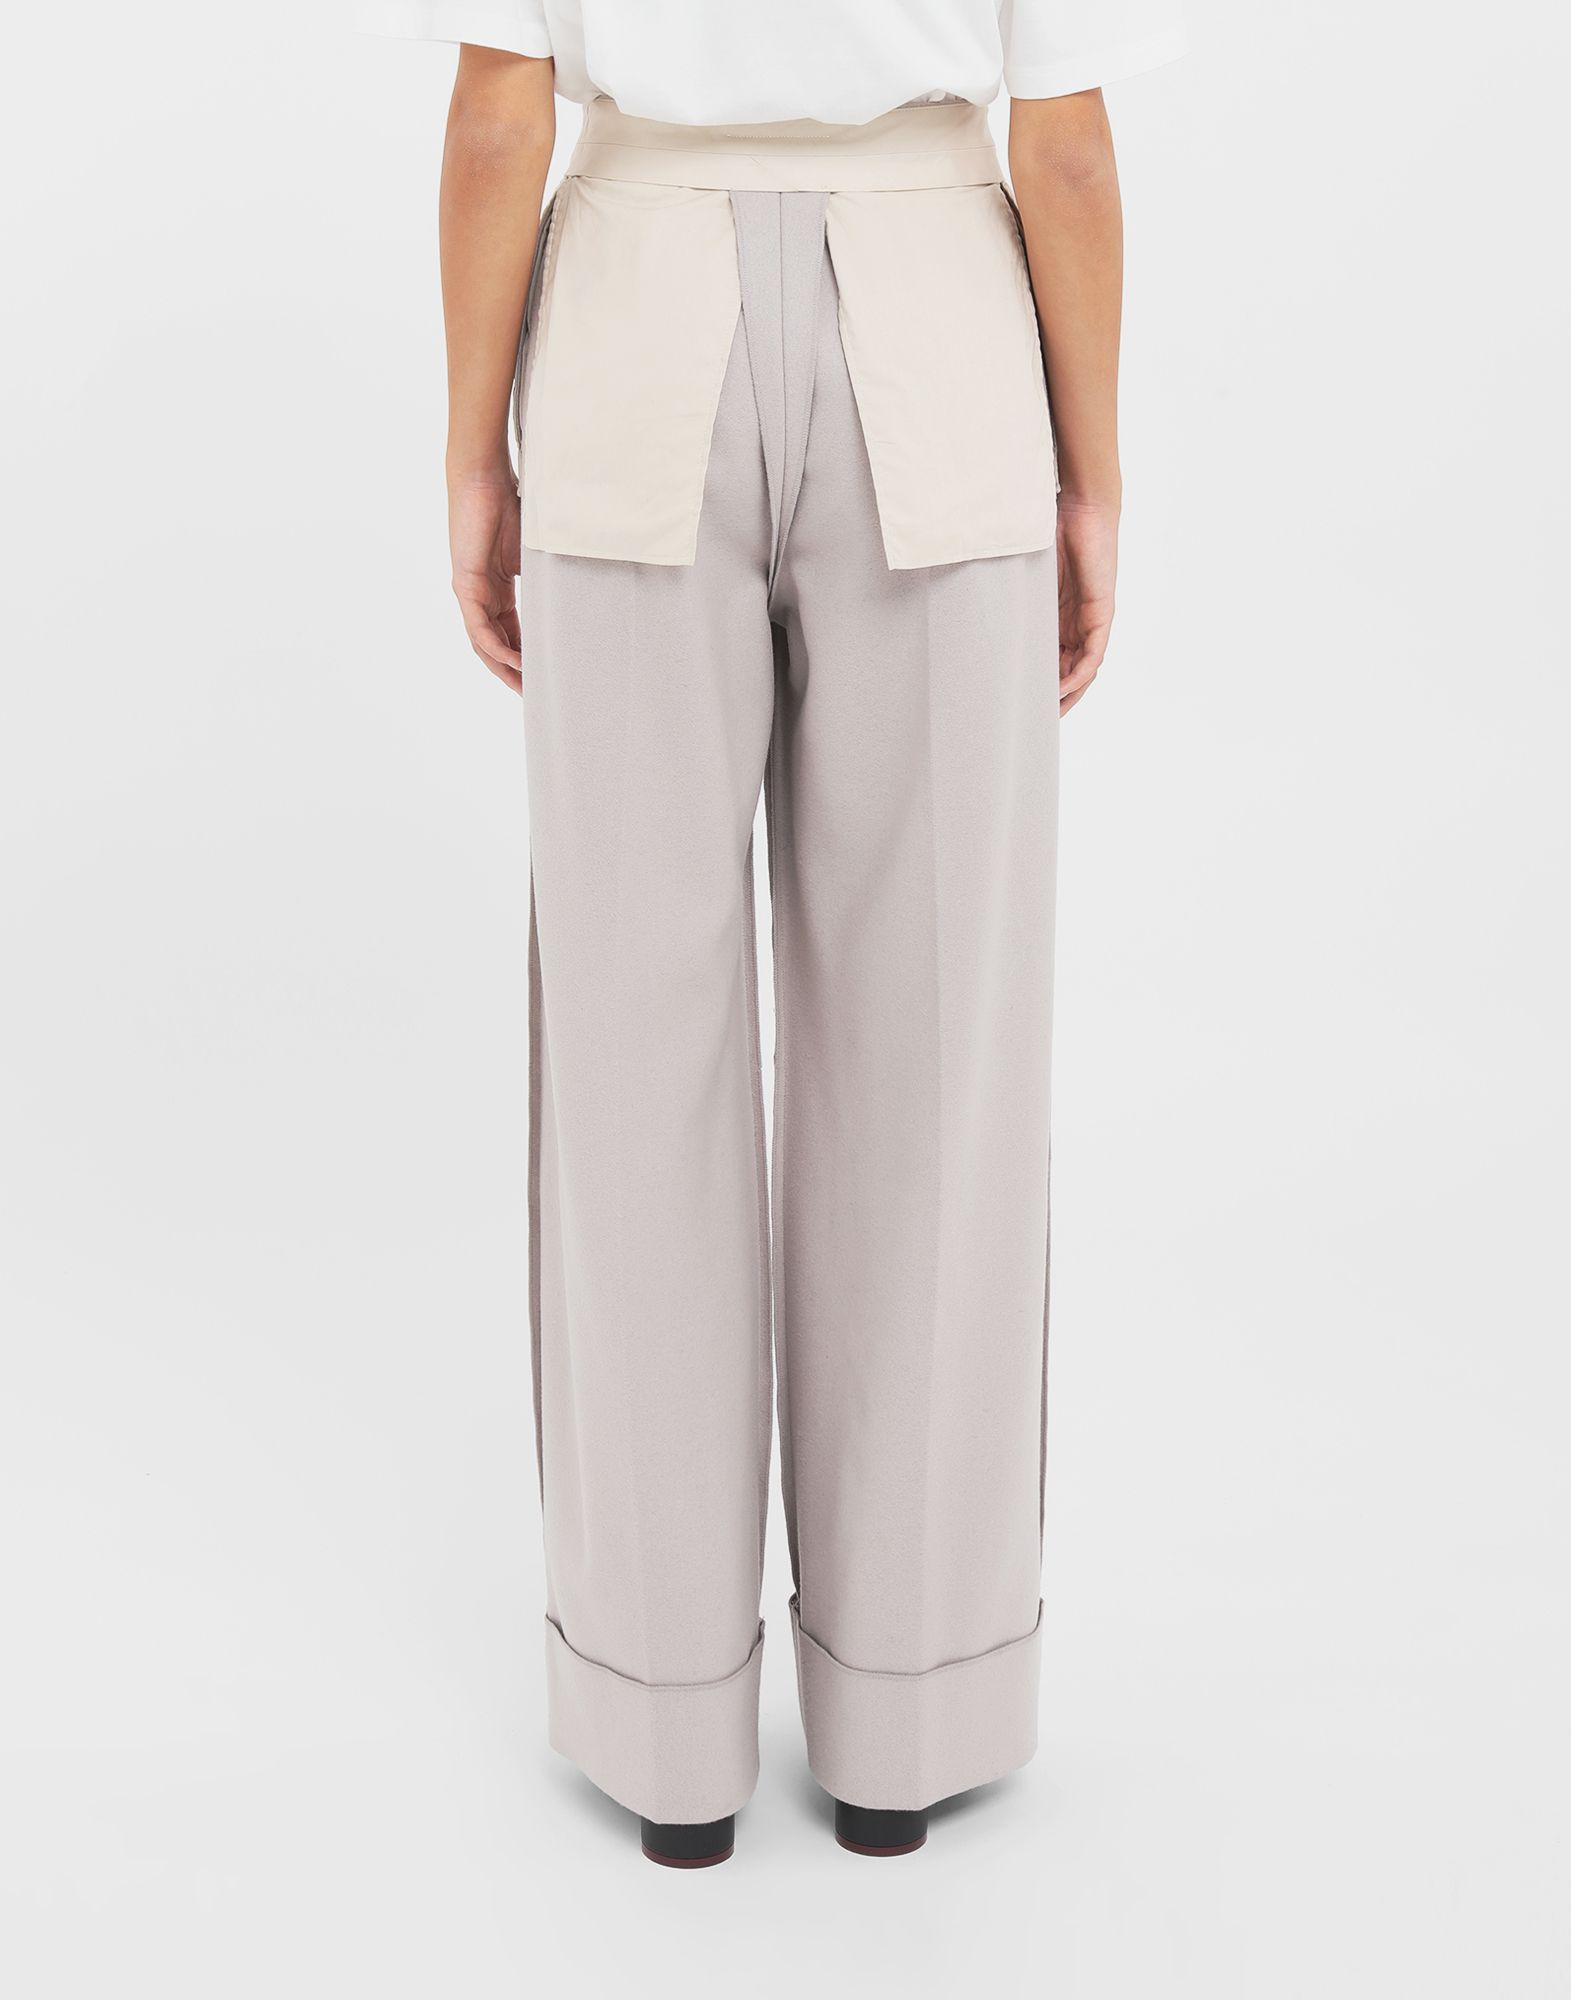 MM6 MAISON MARGIELA Reversed tailored trousers Casual pants Woman e